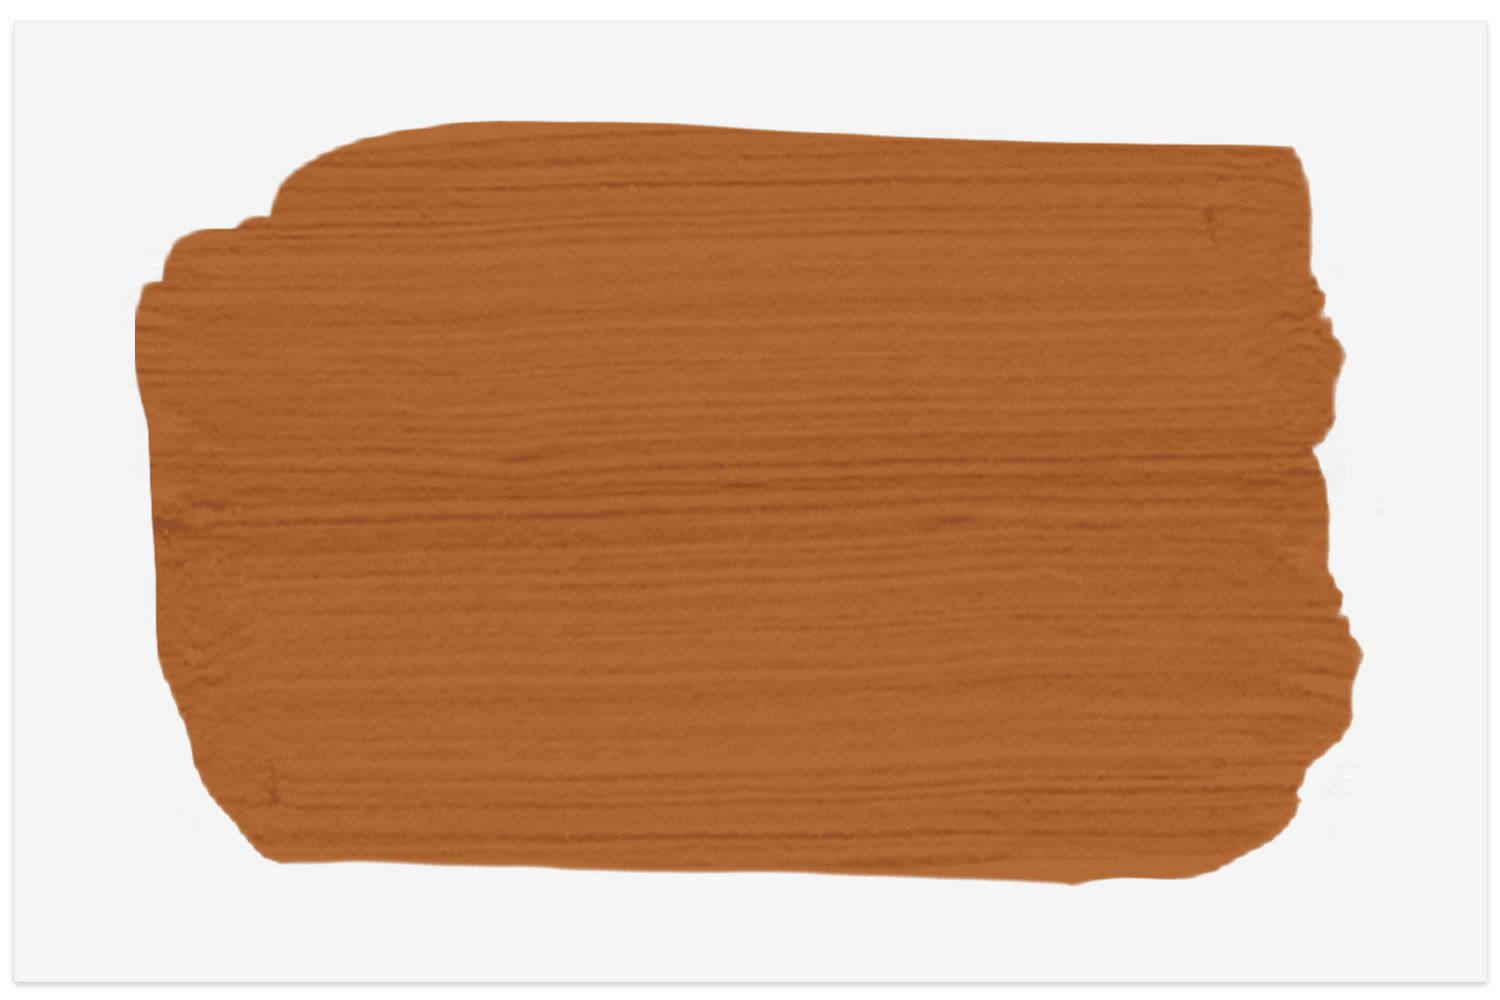 Copper Pot paint swatch from Sherwin Williams